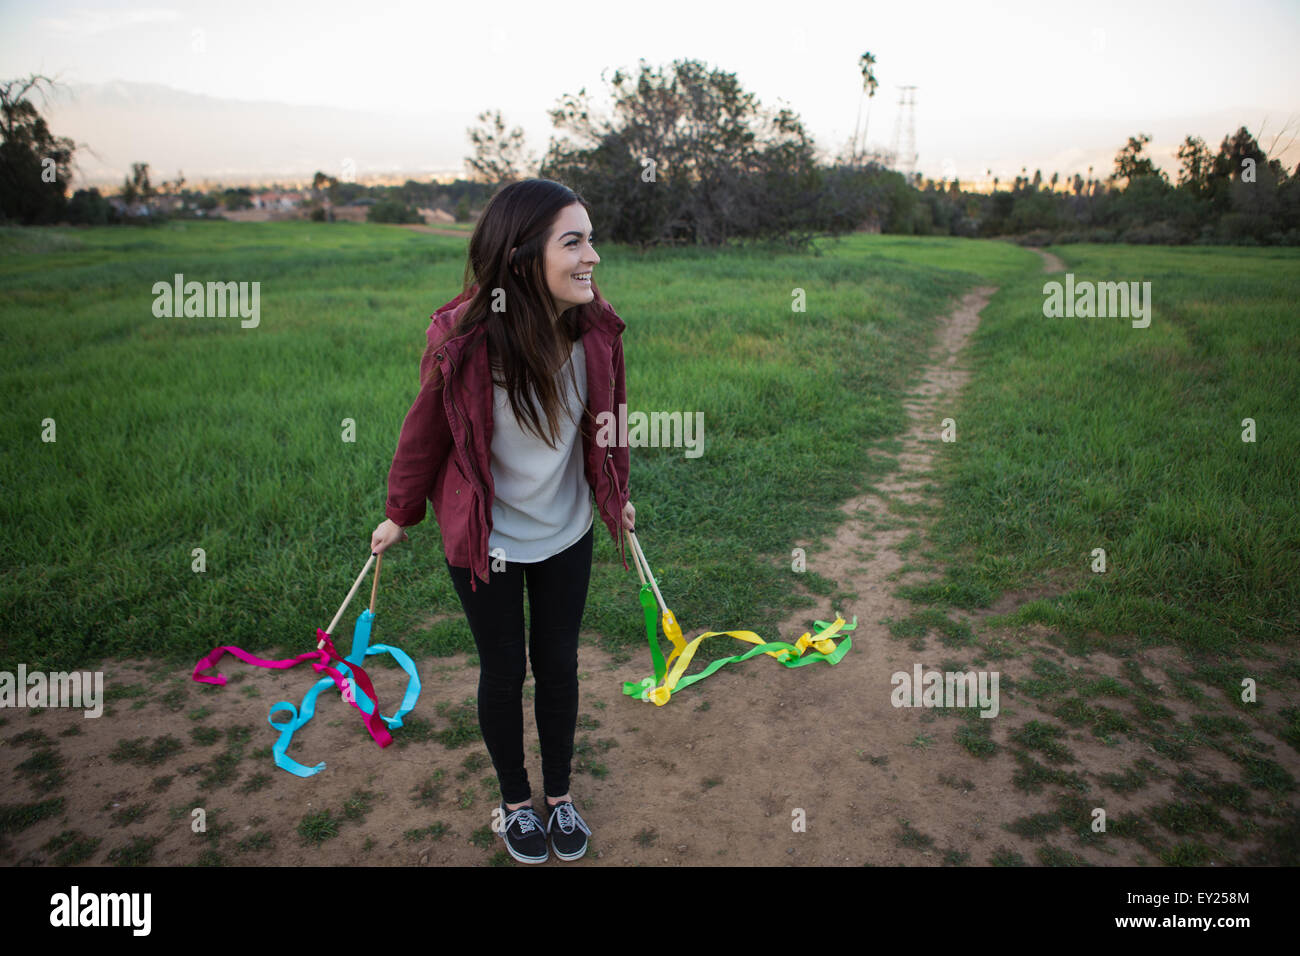 Young woman standing in field holding dance ribbons - Stock Image